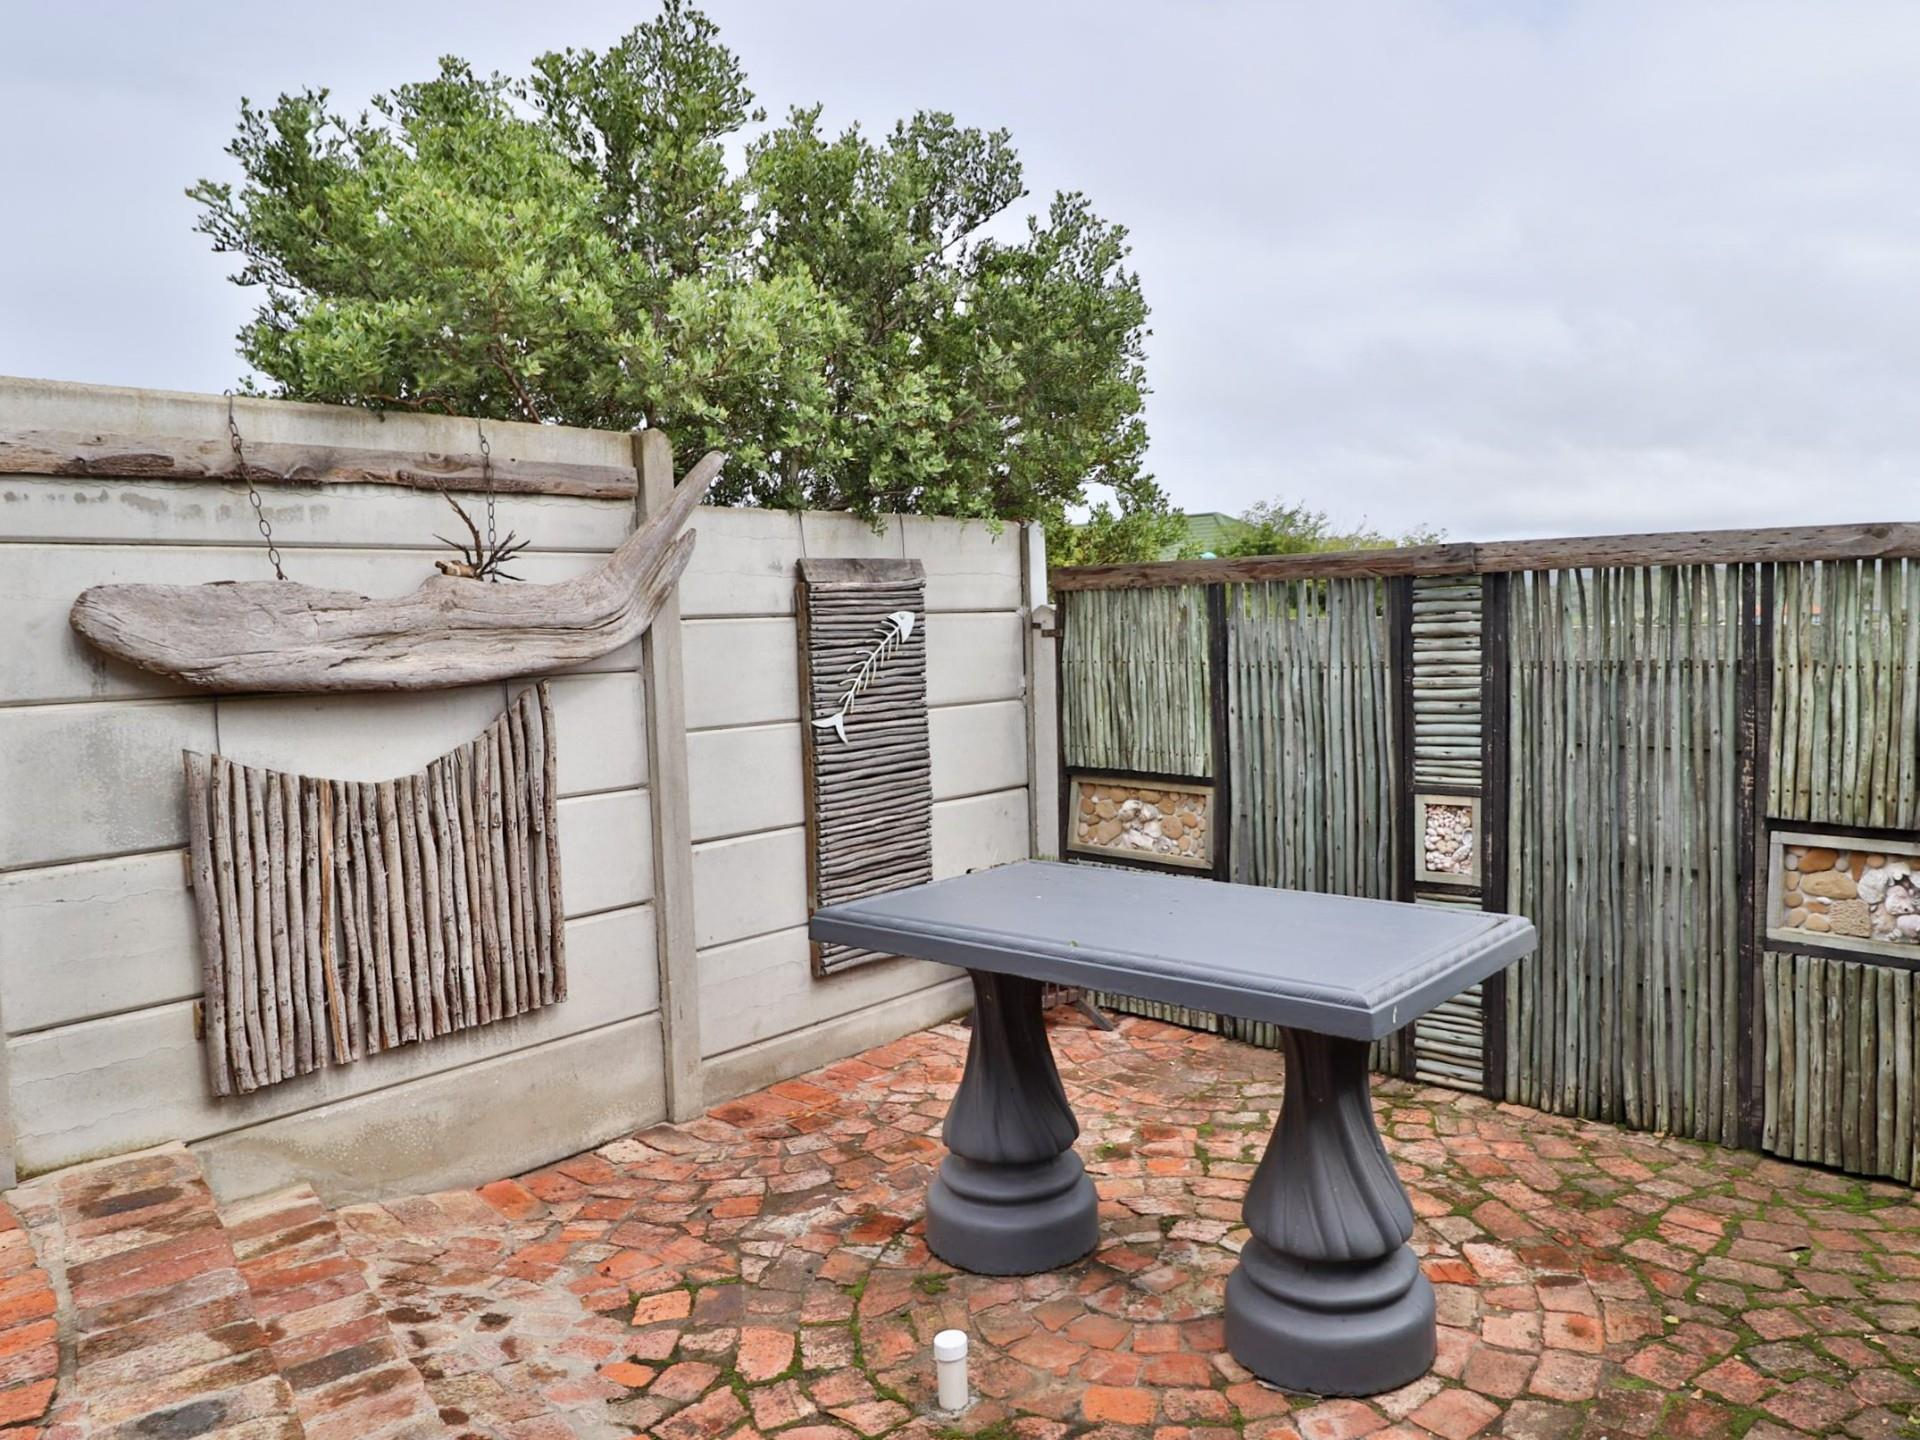 4 Bedroom House For Sale in Sedgehill